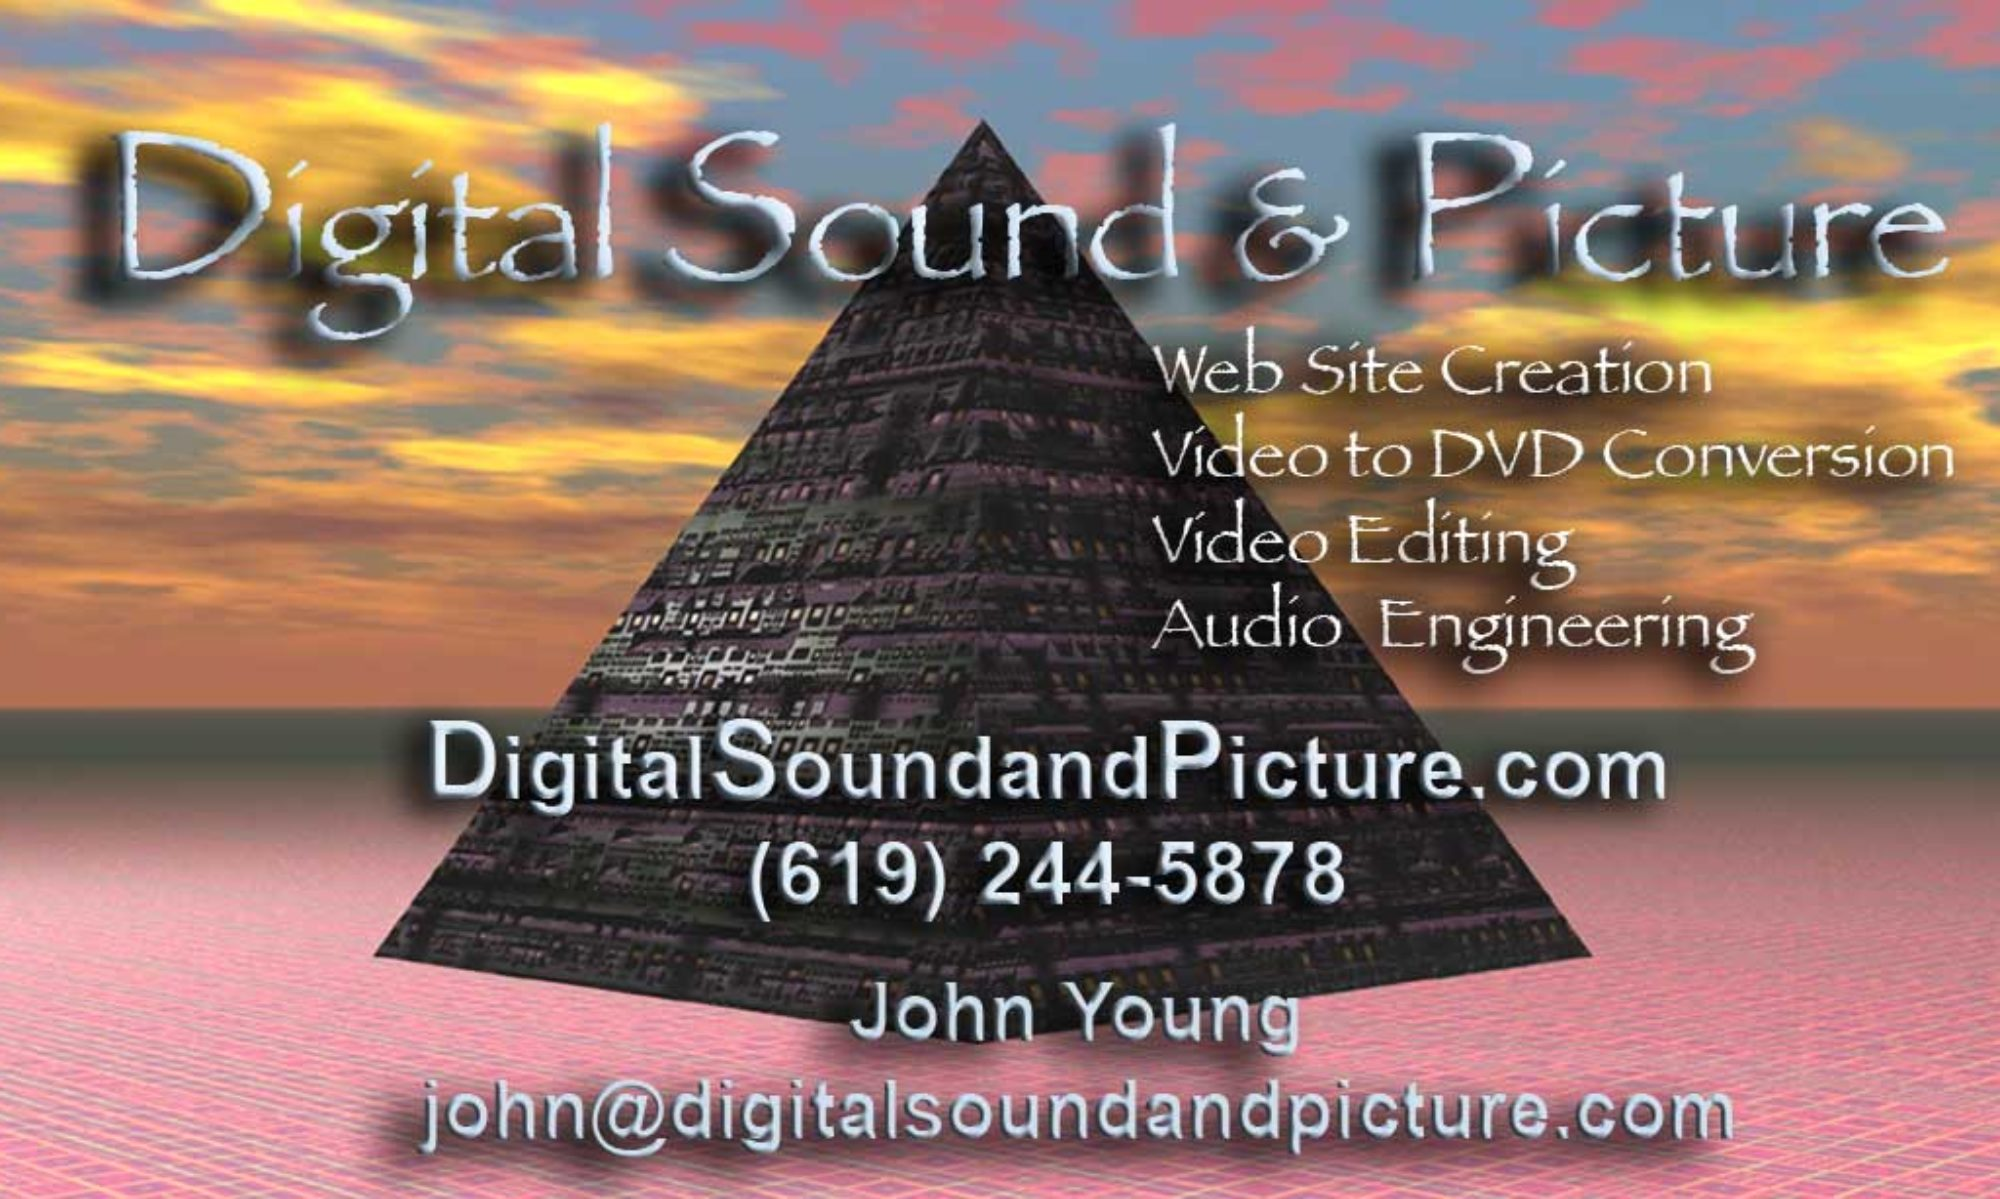 Digital Sound and Picture